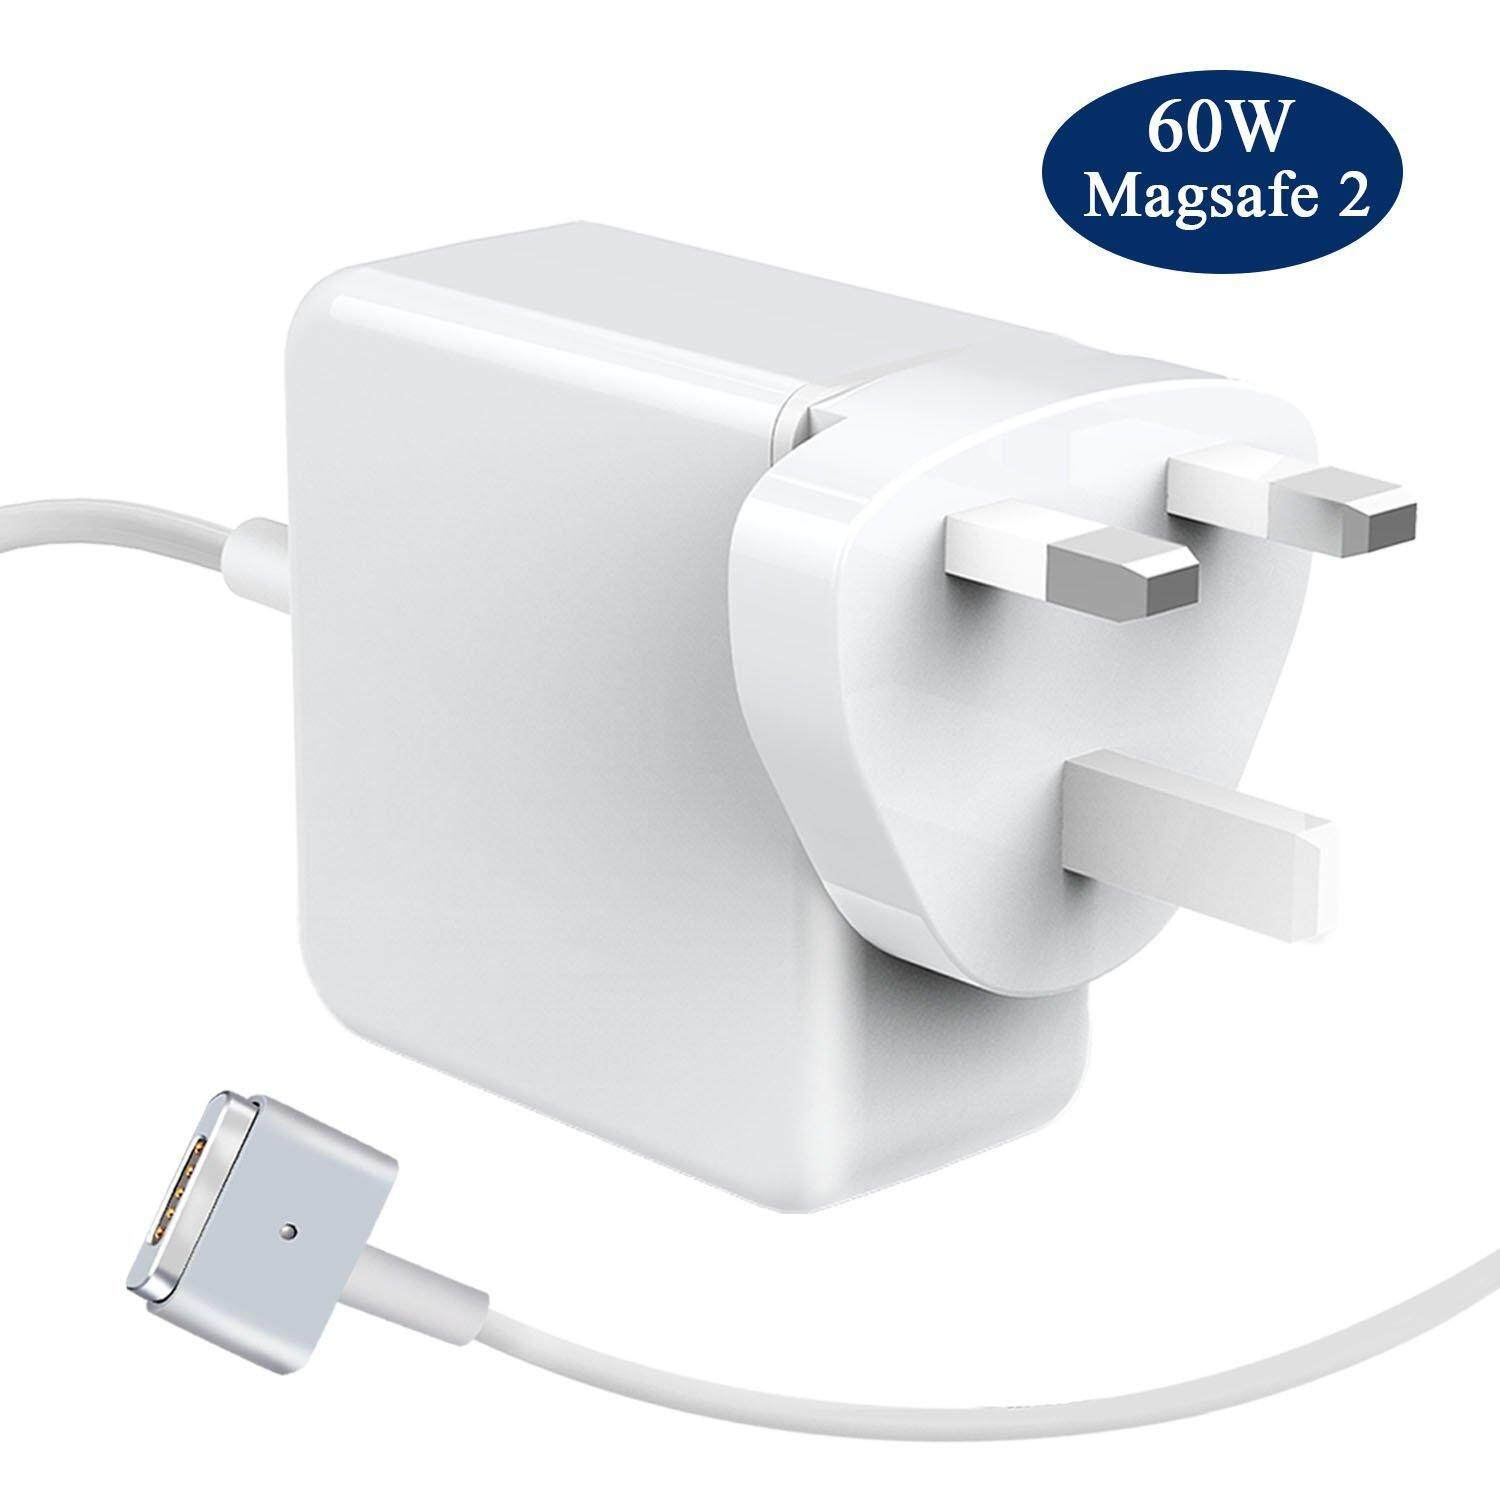 60W Magsafe 2 Power Adapter for Apple Macbook Pro 13 inch UK Adapter T Shape